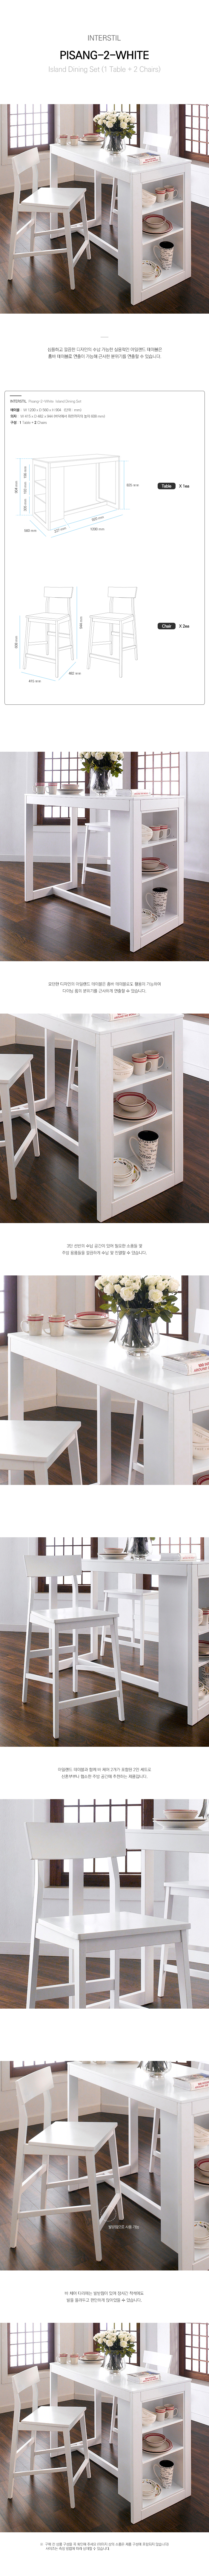 6_15_Pisang-2-White_Island_Dining_Set.jp